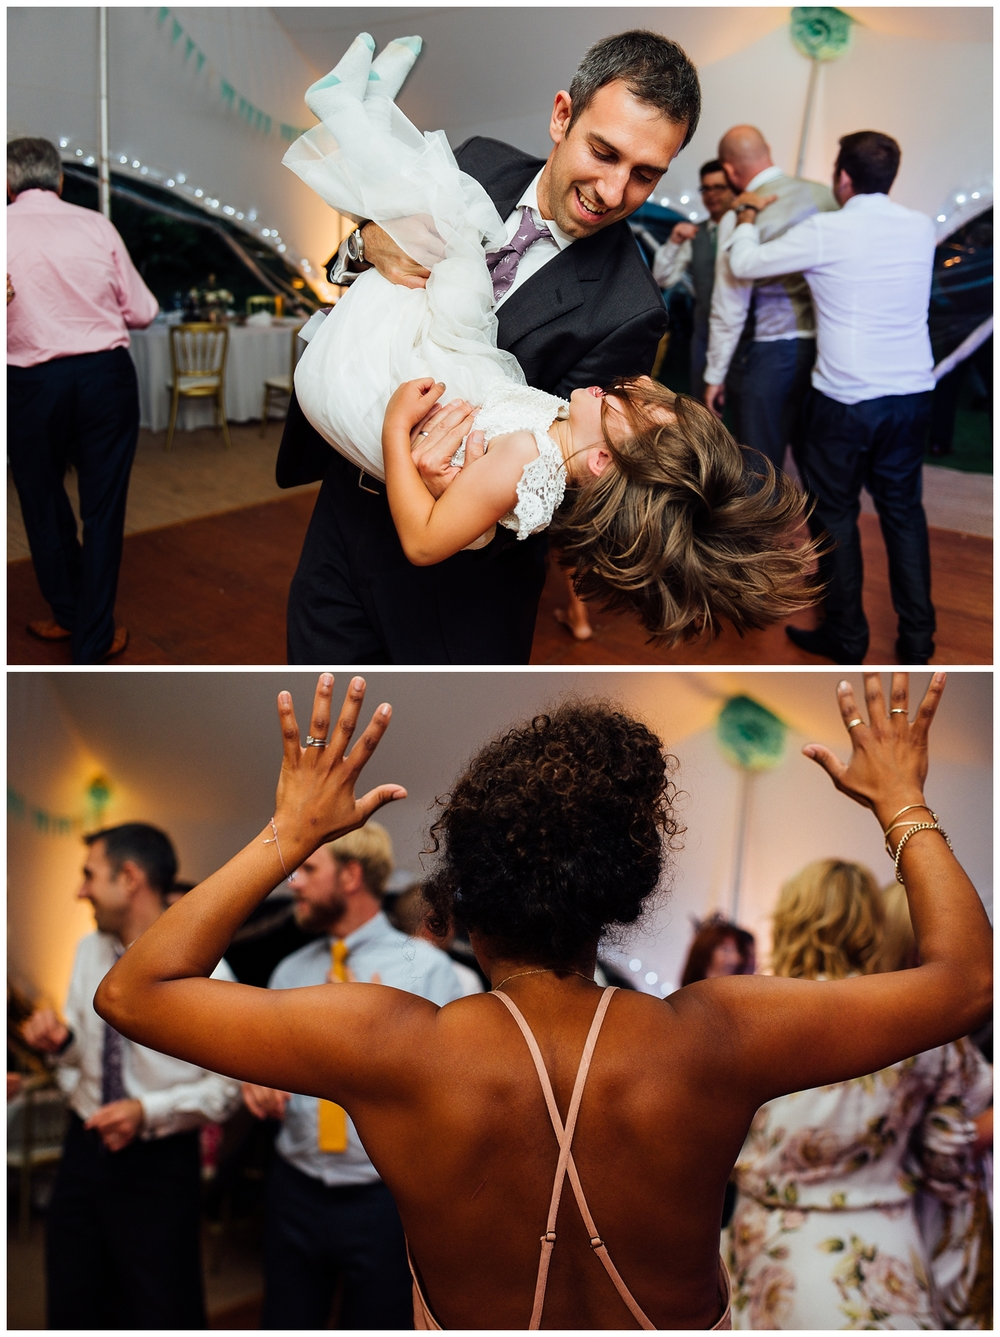 Nikki_Cooper_Photography_Lucy&Scott_Wedding_Photos_The_Crab_Tree_Pub_Horsham_1157.jpg